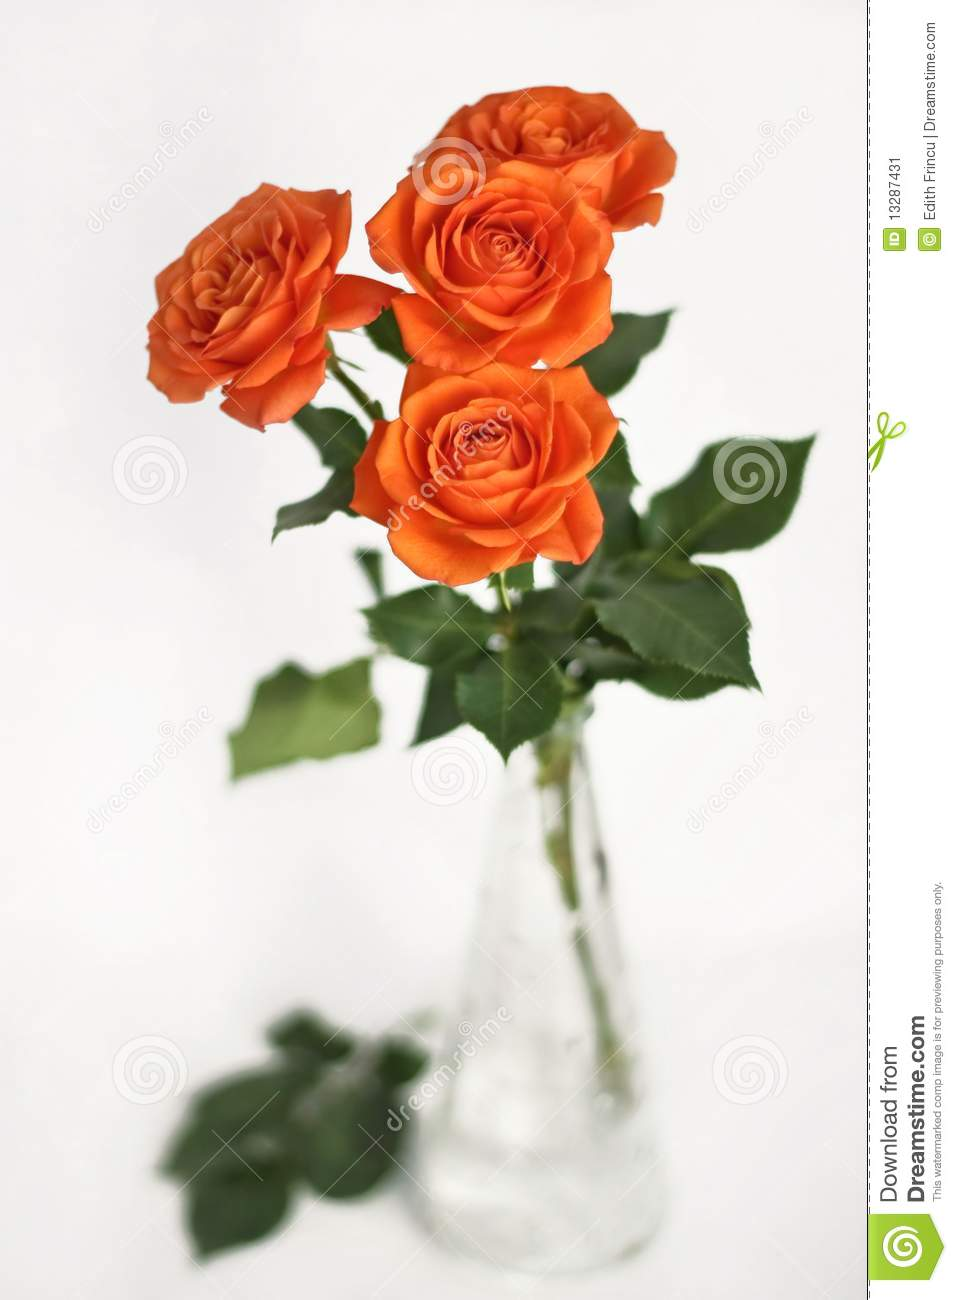 Orange roses in a vase stock image image of decorations 13287431 orange roses in a vase floridaeventfo Choice Image